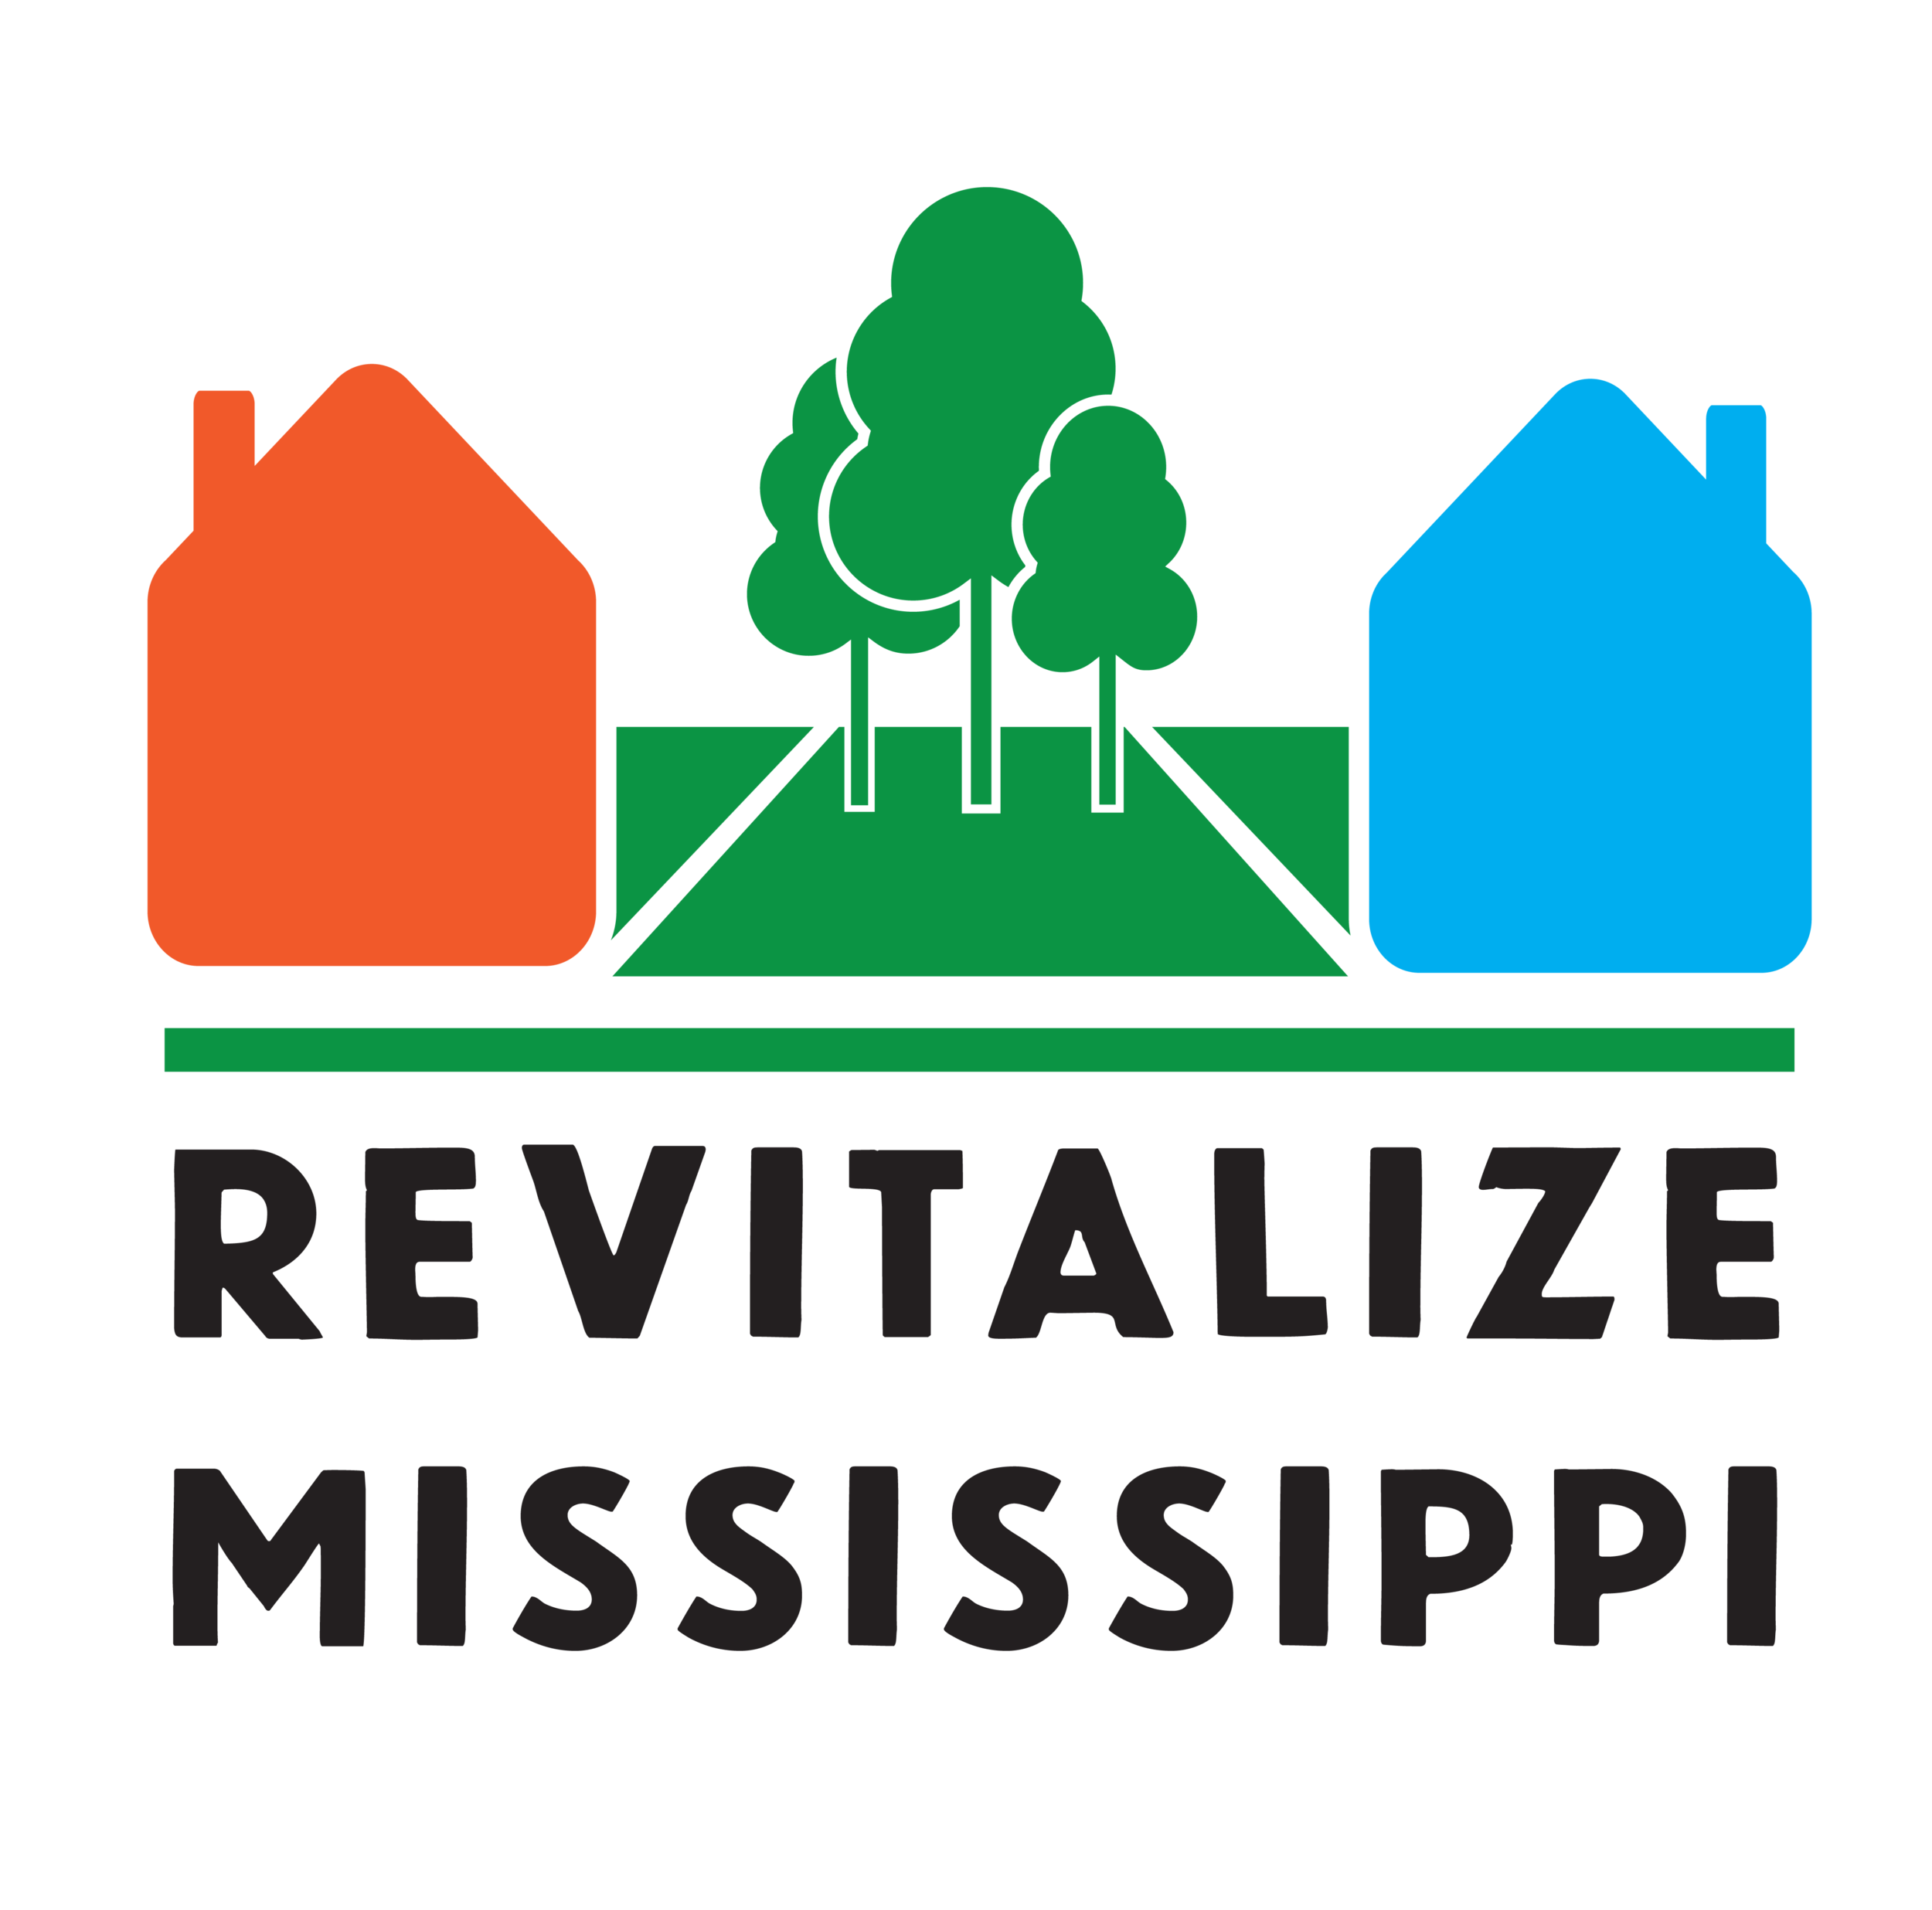 - Revitalize Mississippi, a 501(c)(3) non-profit corporation, was formed to address problems with abandoned property and blight in the Jackson area. Specifically, Revitalize Mississippi cleans overgrown lots, demolishes dilapidated houses, and provides related guidance to eligible neighborhoods and communities.